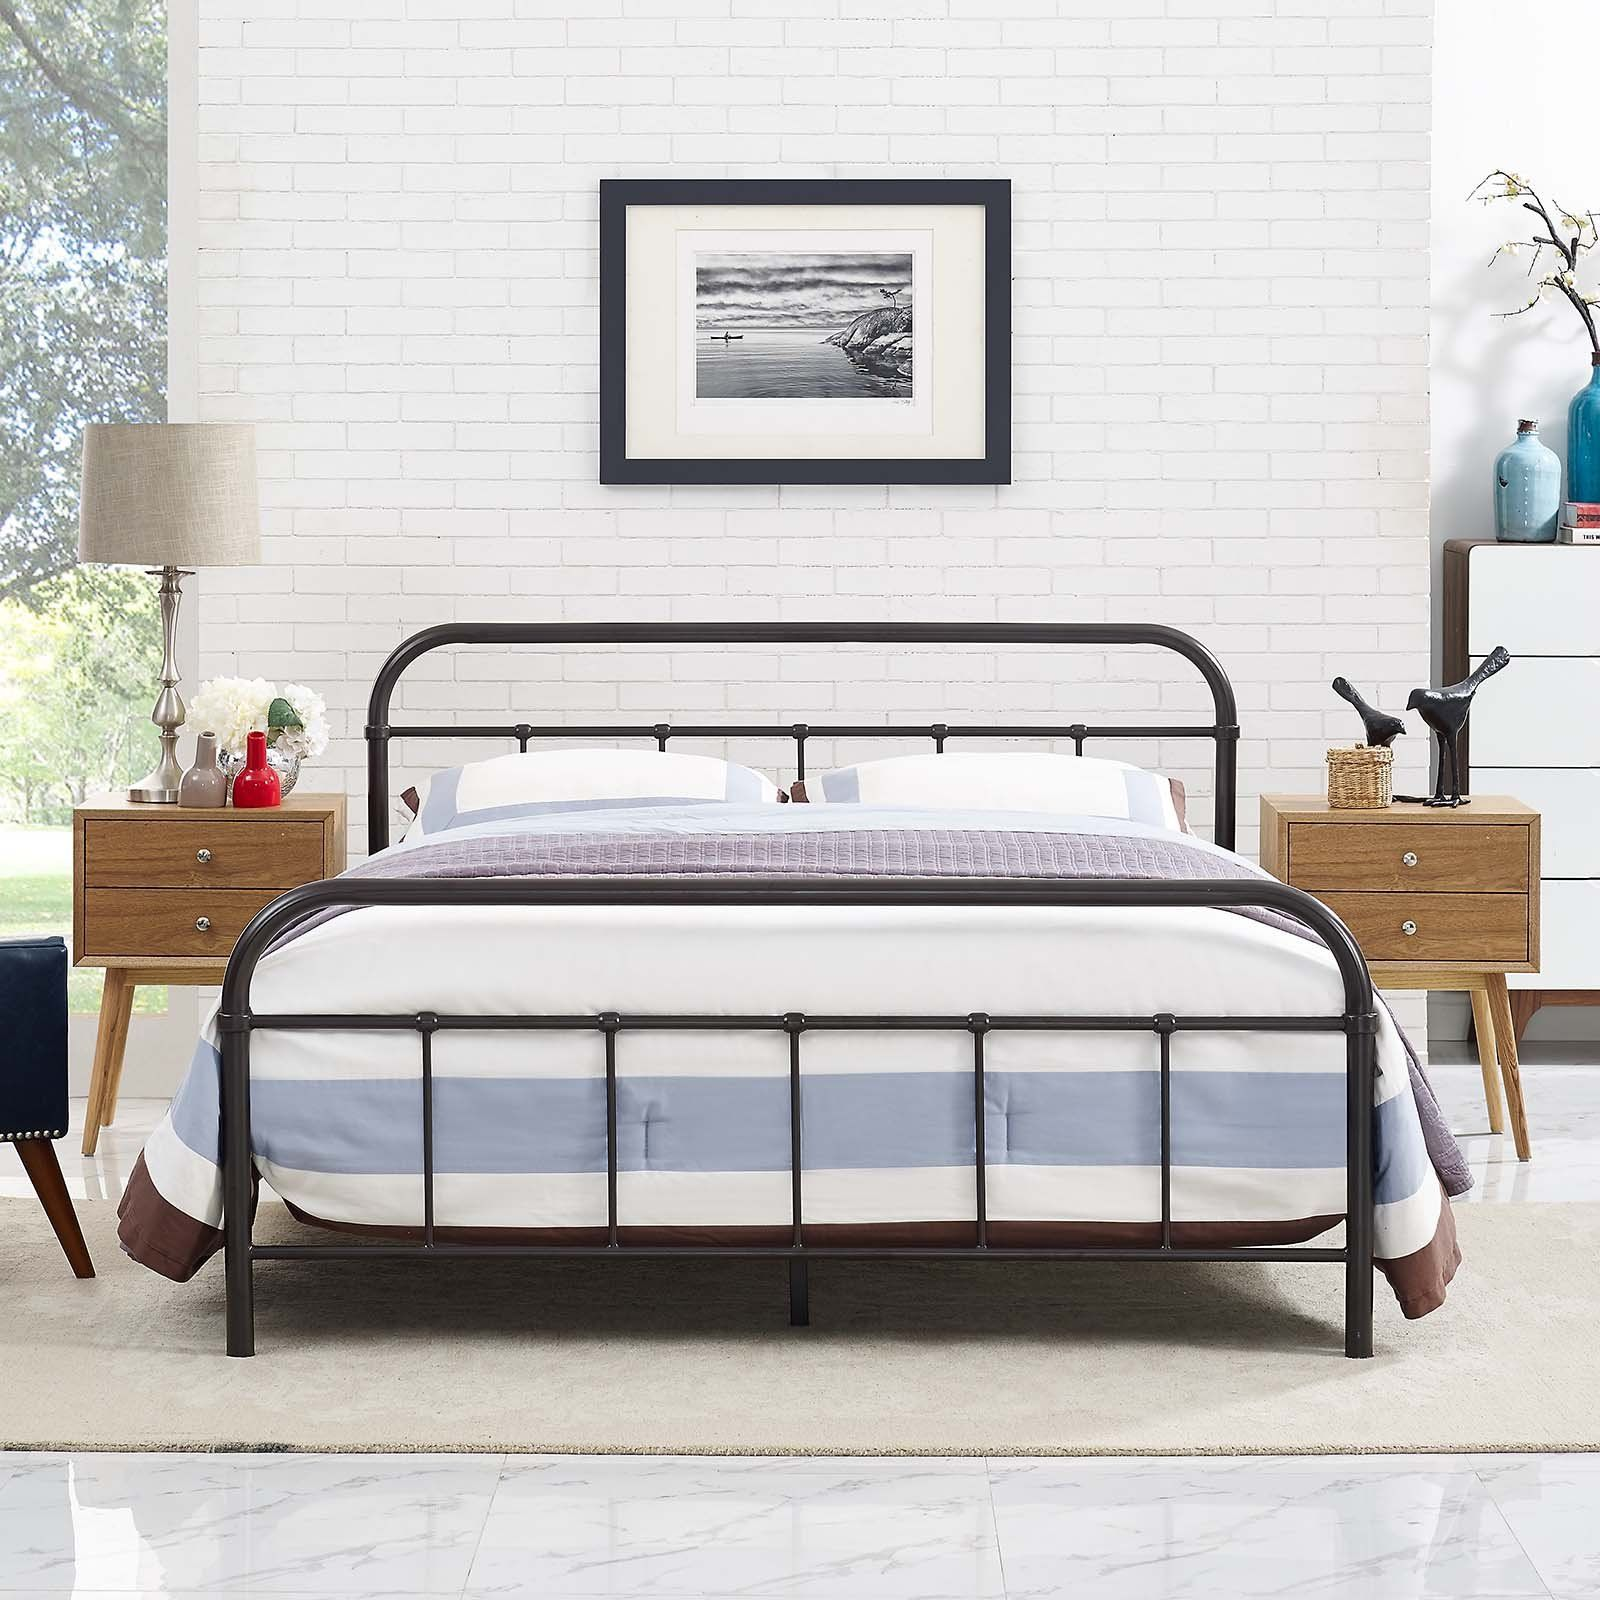 Modway Furniture Modern Maisie Full Stainless Steel Bed Frame